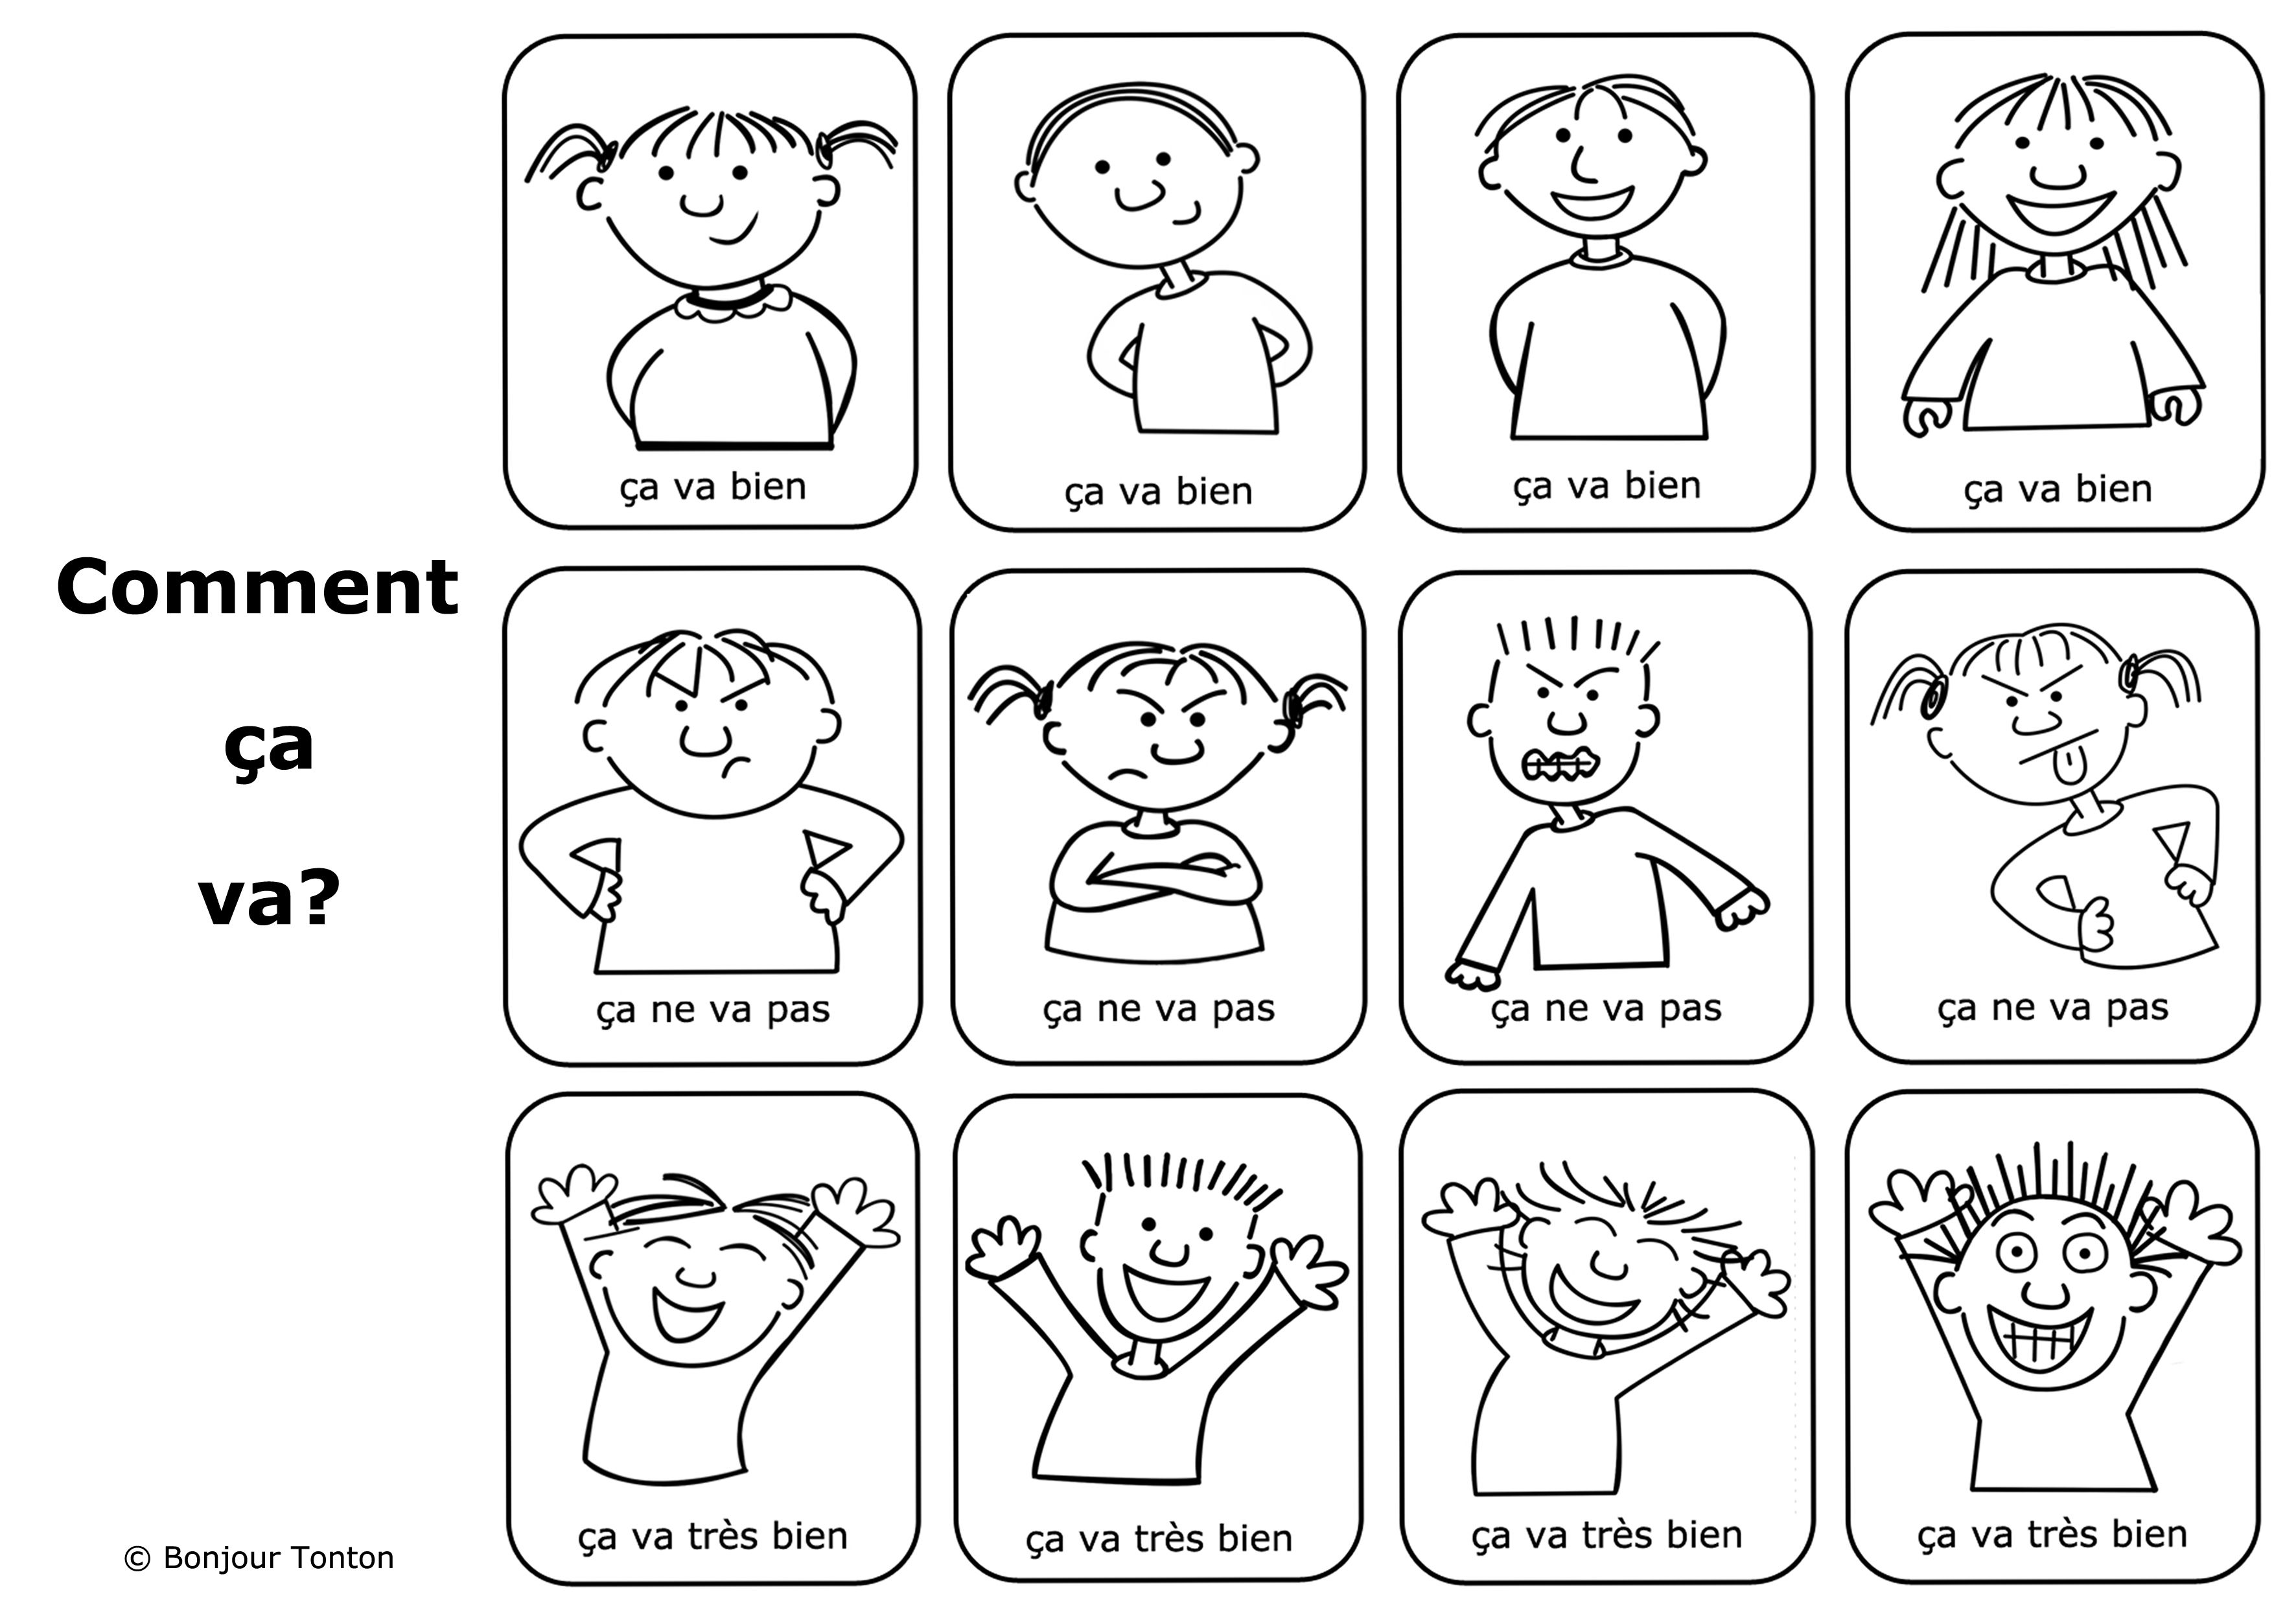 A Free French Lesson Plan Aimed At Teaching Very Young Children How To Say How Are You In The Home Through Fun Free French Lessons French Lessons Fun French [ 2480 x 3543 Pixel ]